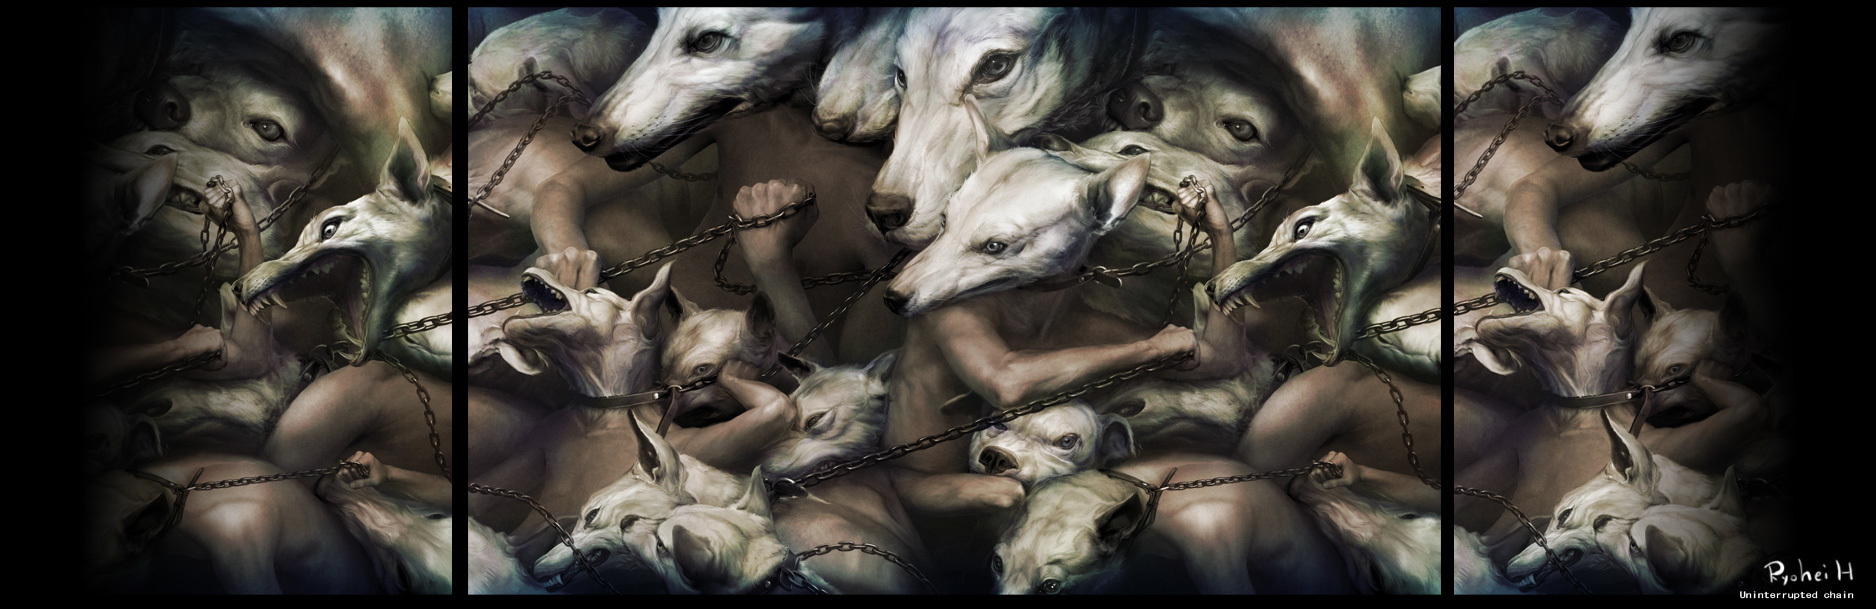 ryohei hase Dogs Wolves